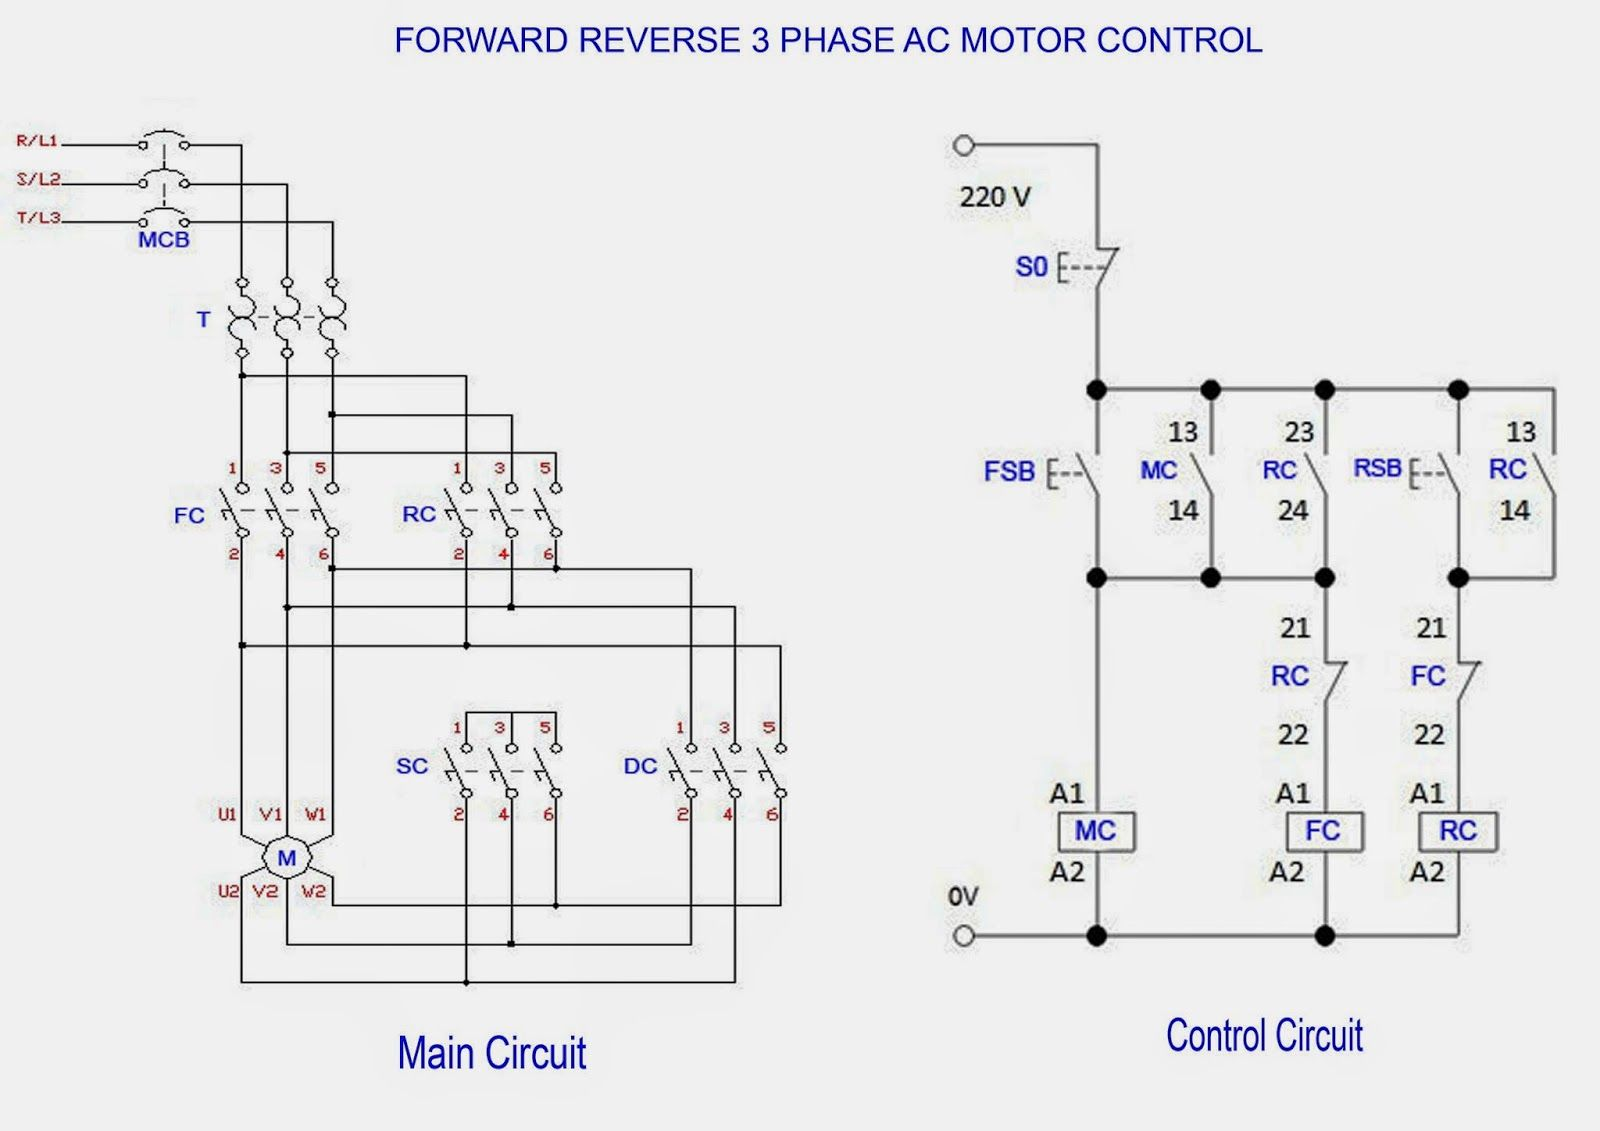 3 Phase Welding Machine Wiring Diagram Manual Of Forward Reverse Ac Motor Control Motors Rh Pinterest Com